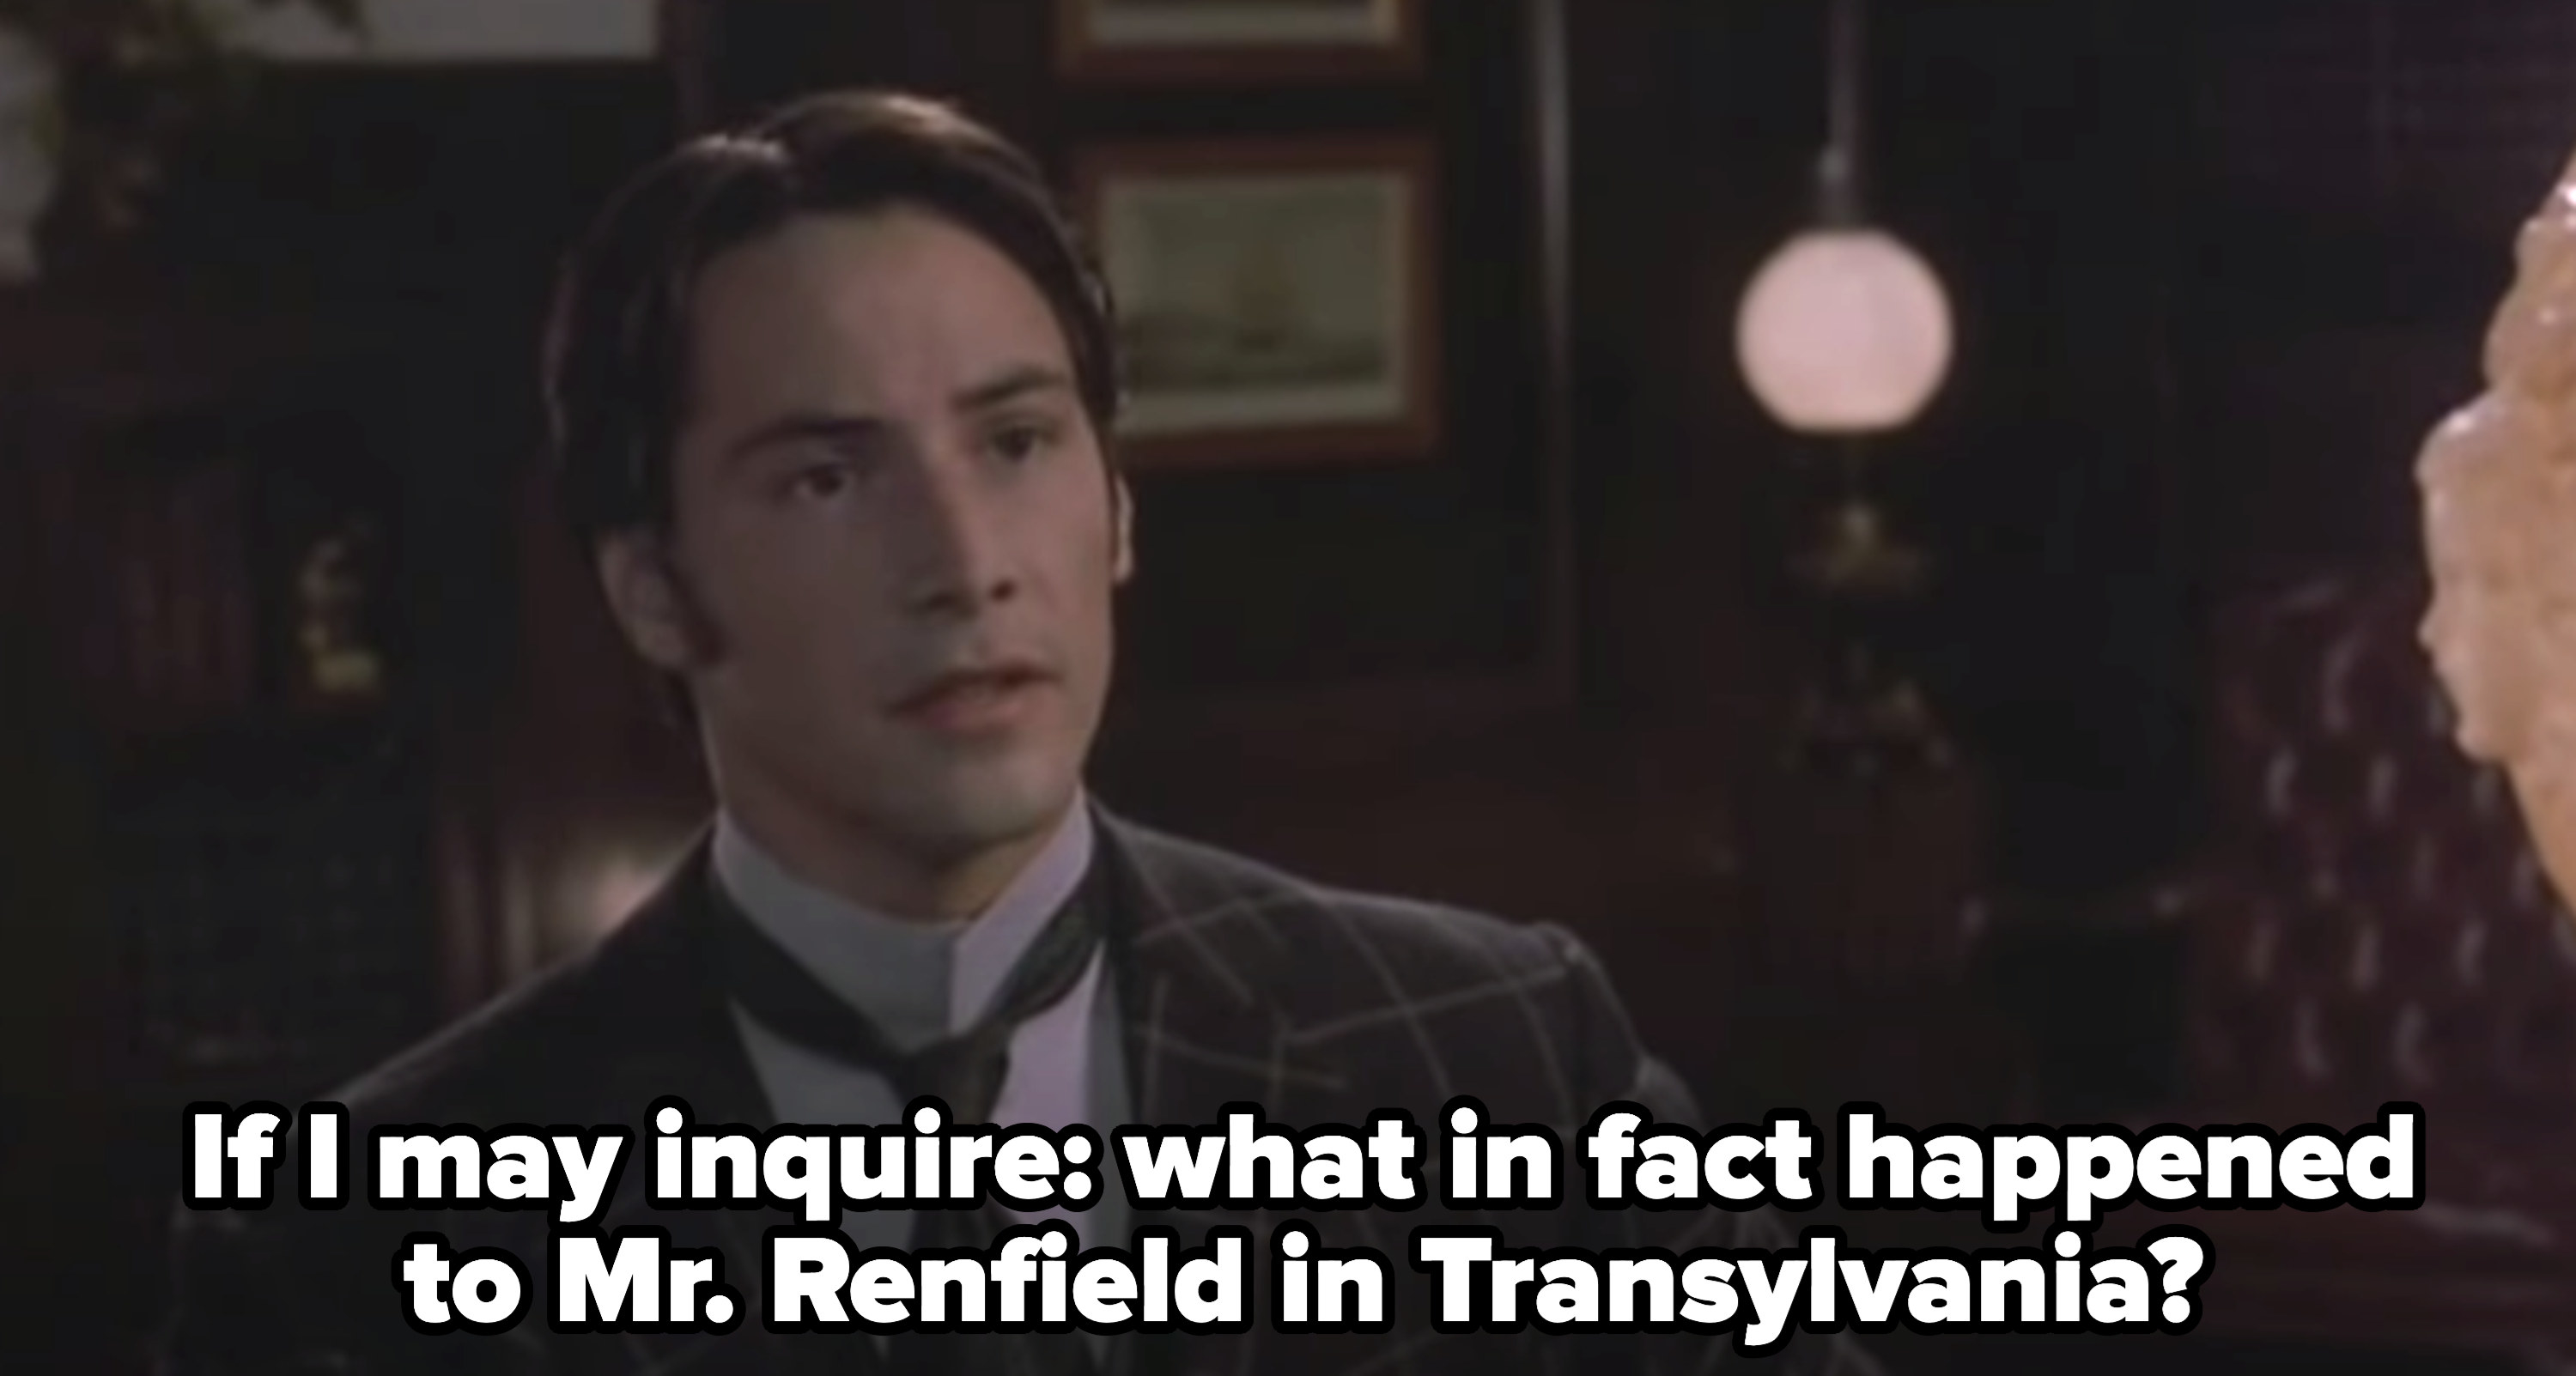 """Jonathan asking: """"If I may inquire: what in fact happened to Mr. Renfield in Transylvania?"""""""